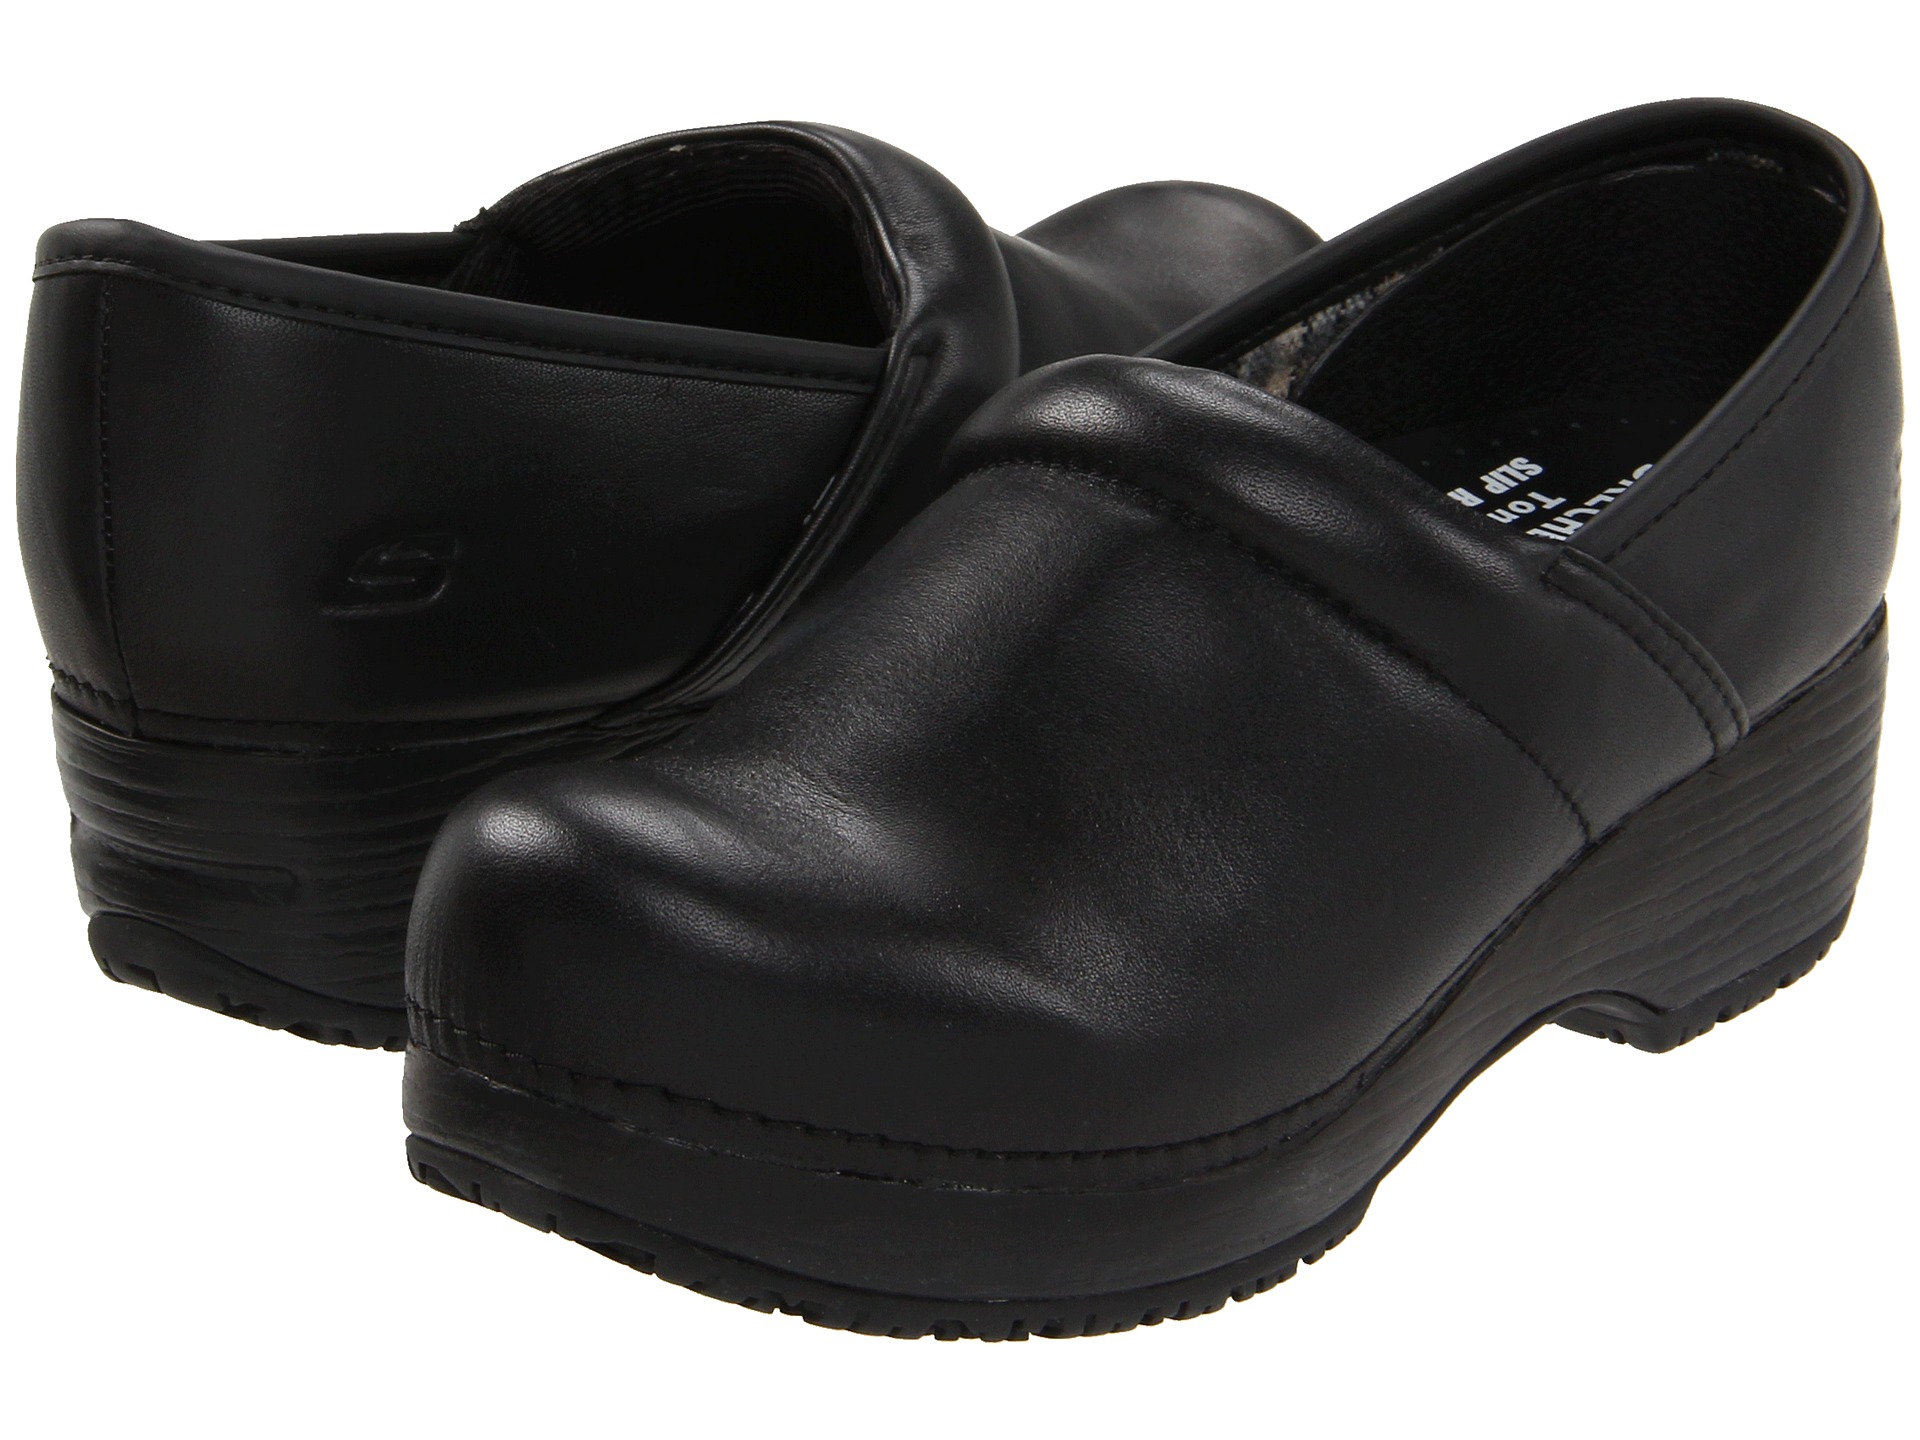 Zappos Womens Shoes Size